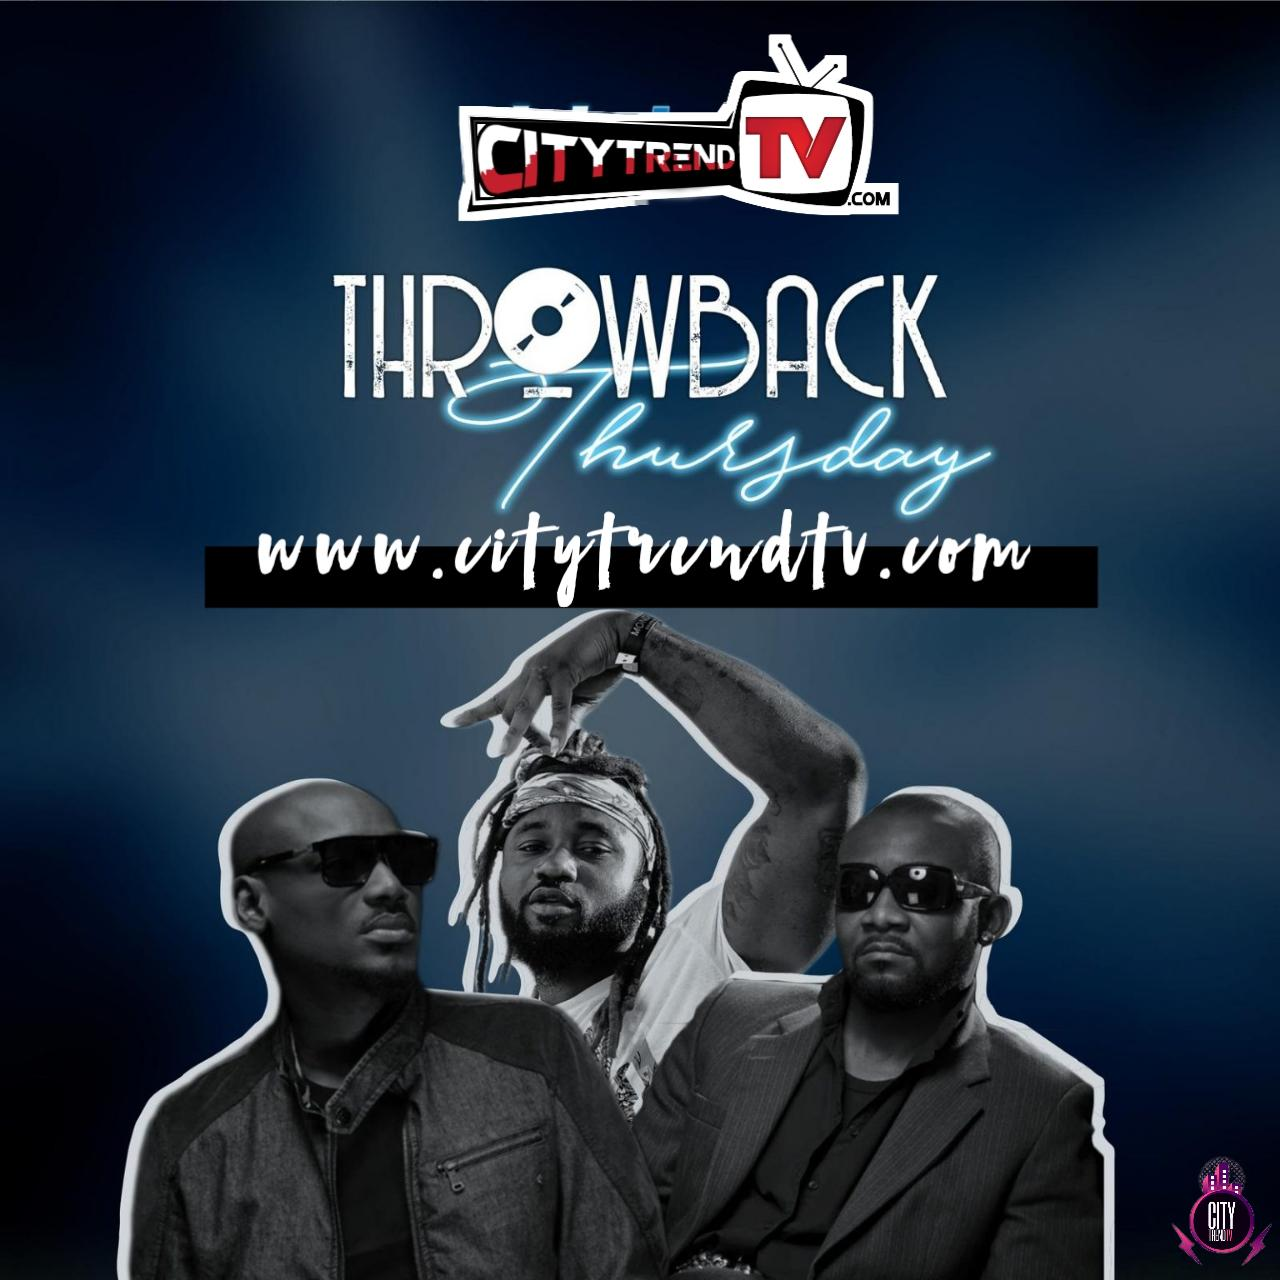 ThrowbackSongs ArtCover CitytrendTv.Com